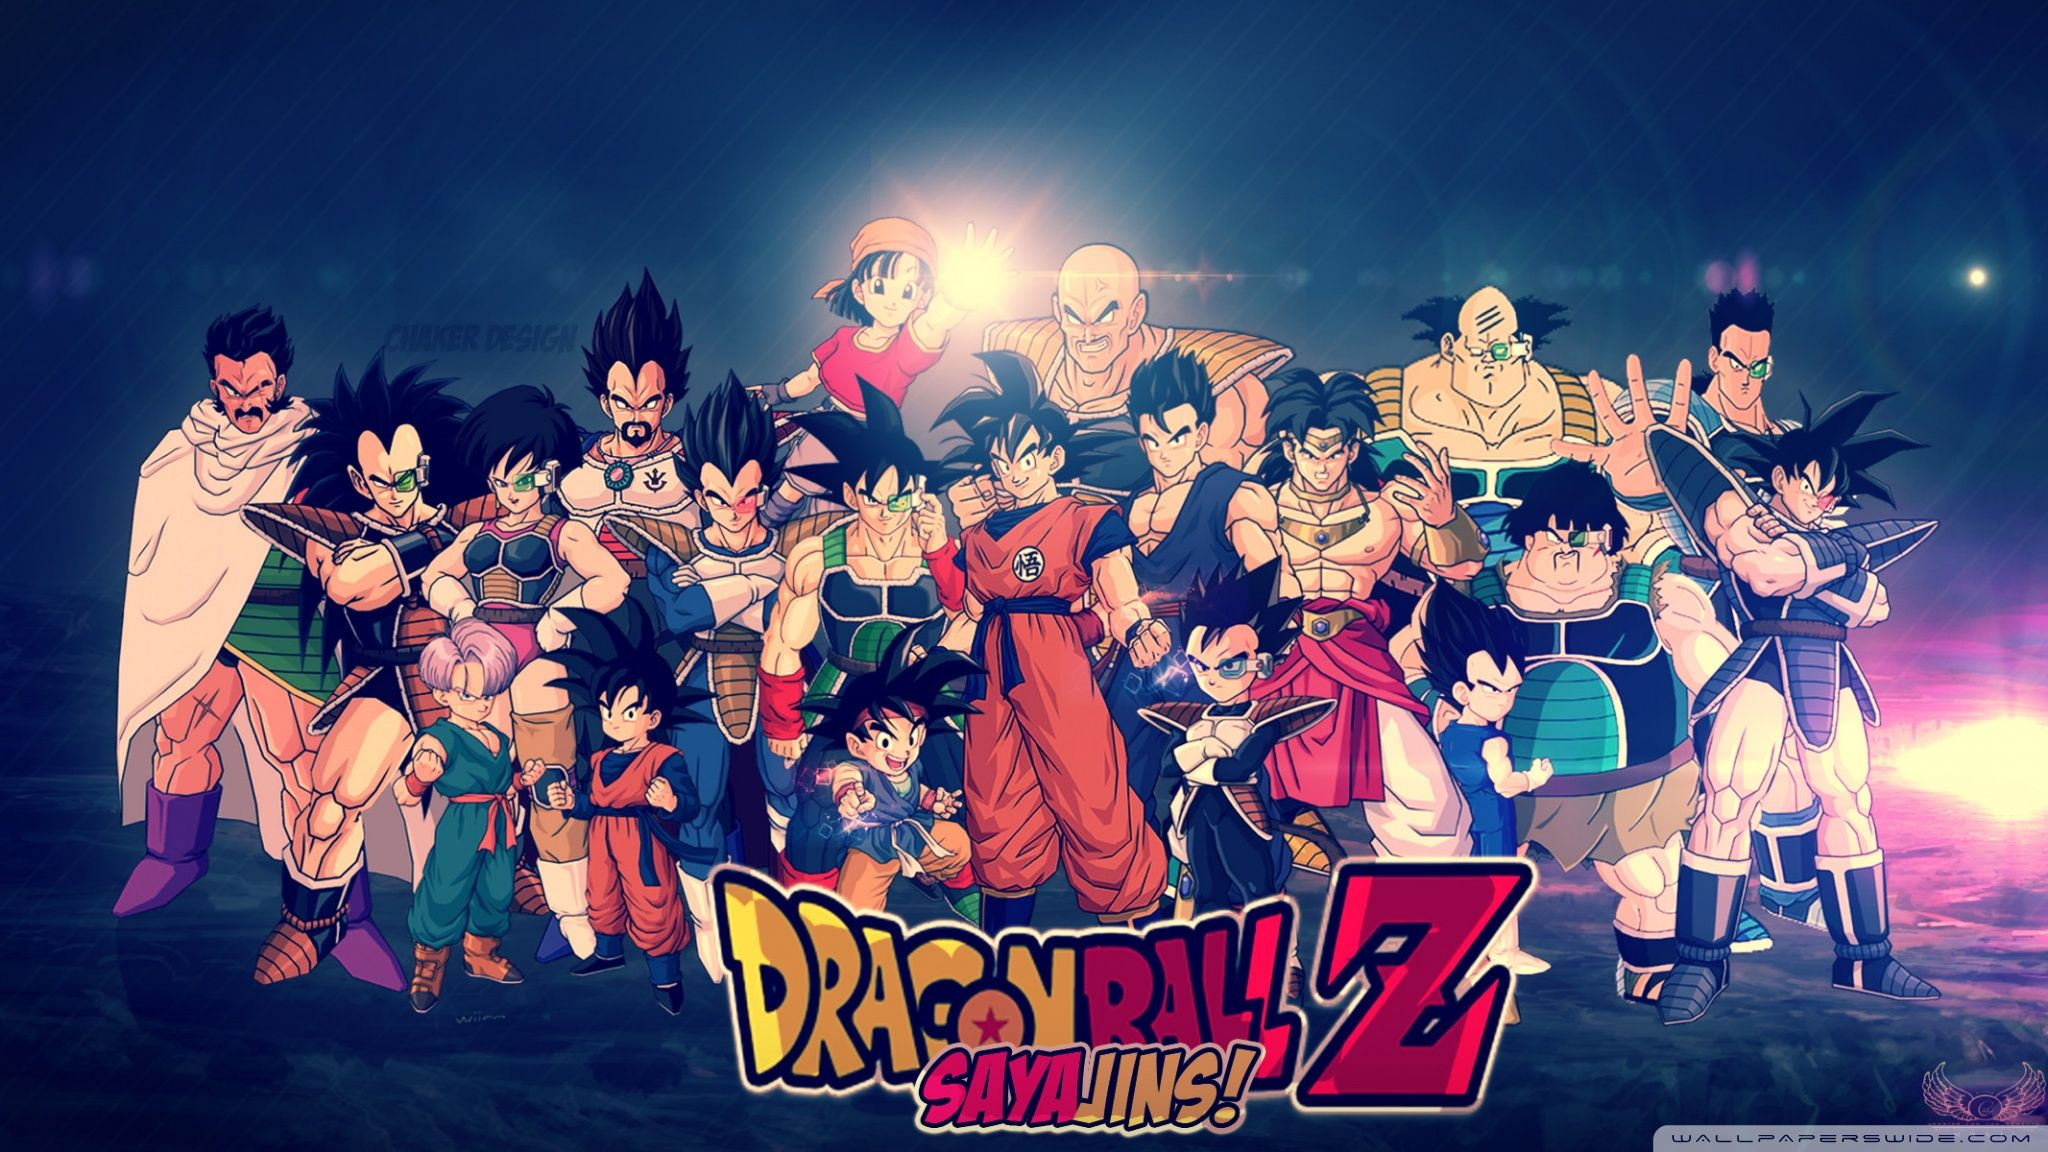 Dragonball Z Saiyan Family HD Wallpaper Wallpaper